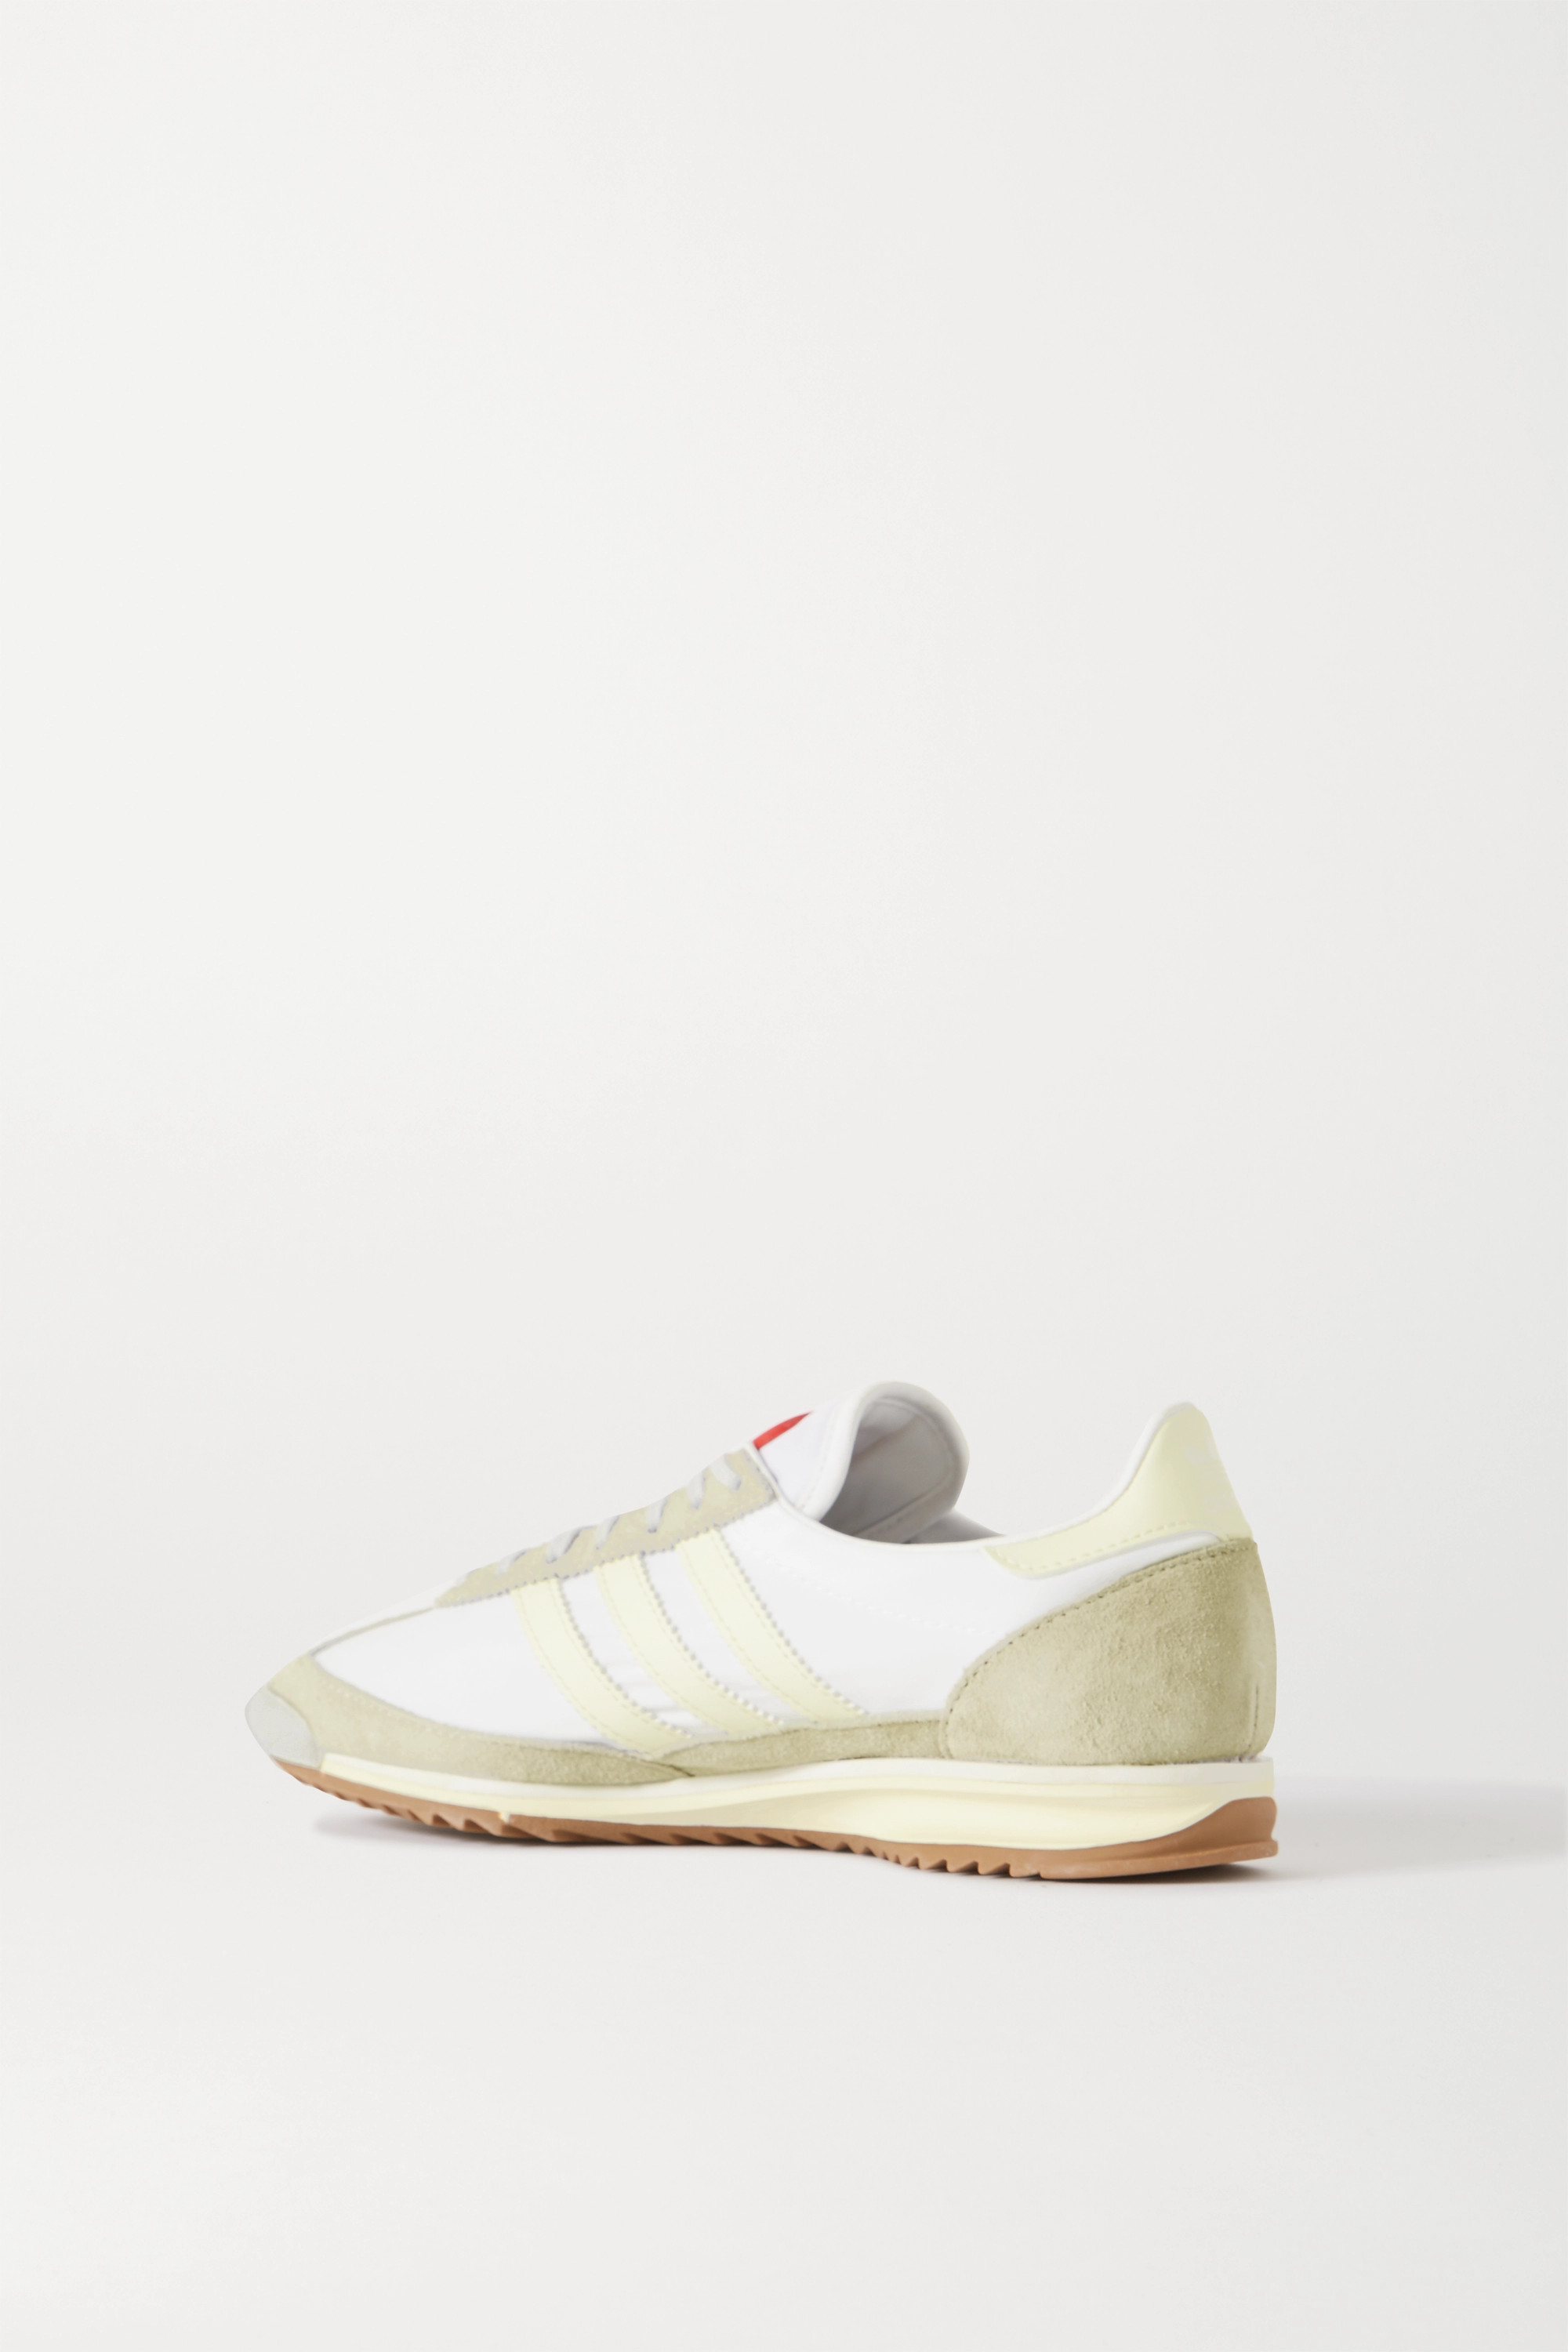 adidas Originals + Lotta Volkova SL 72 shell, leather and suede sneakers